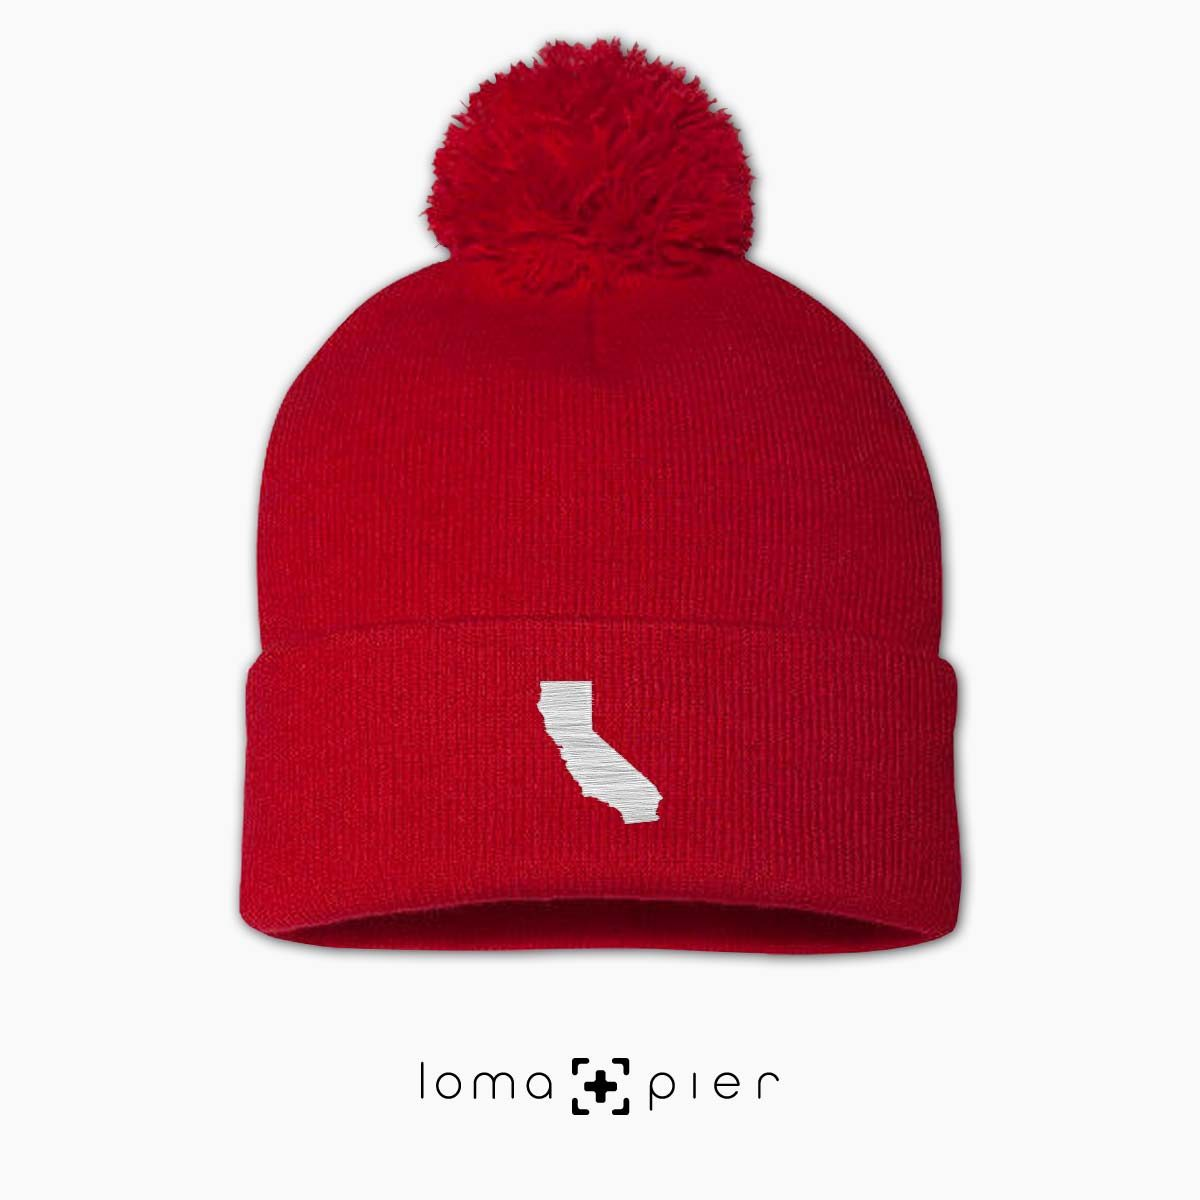 CALIFORNIA silhouette icon embroidered on a red pom pom beanie by loma+pier hat store